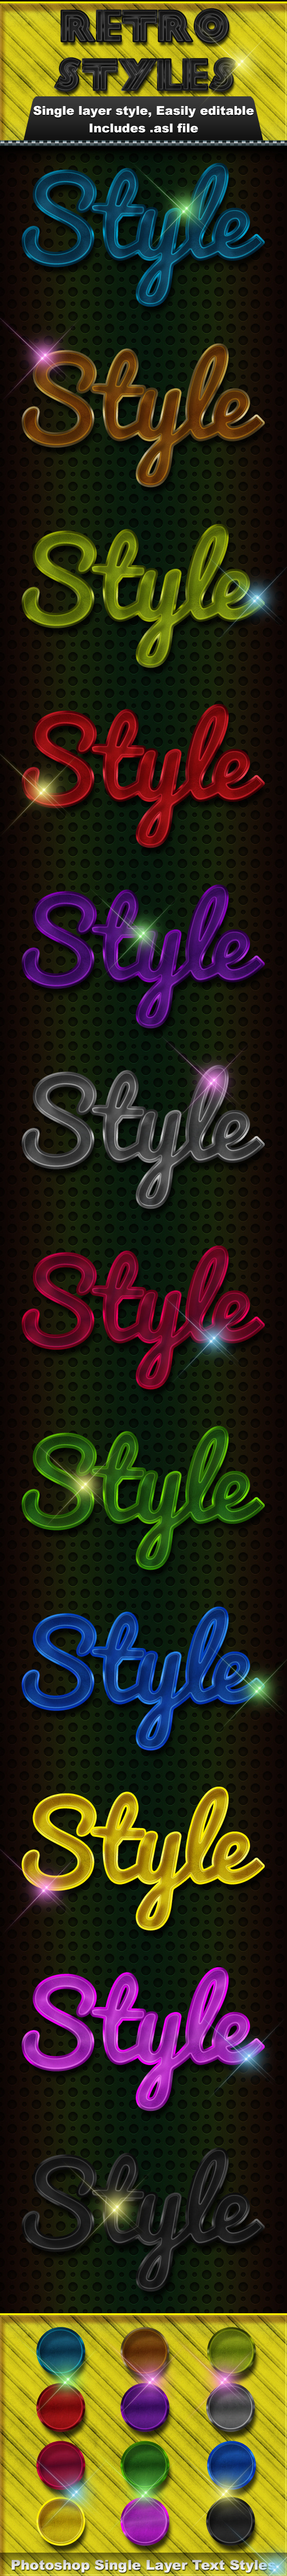 Retro Styles - Text Effects Styles